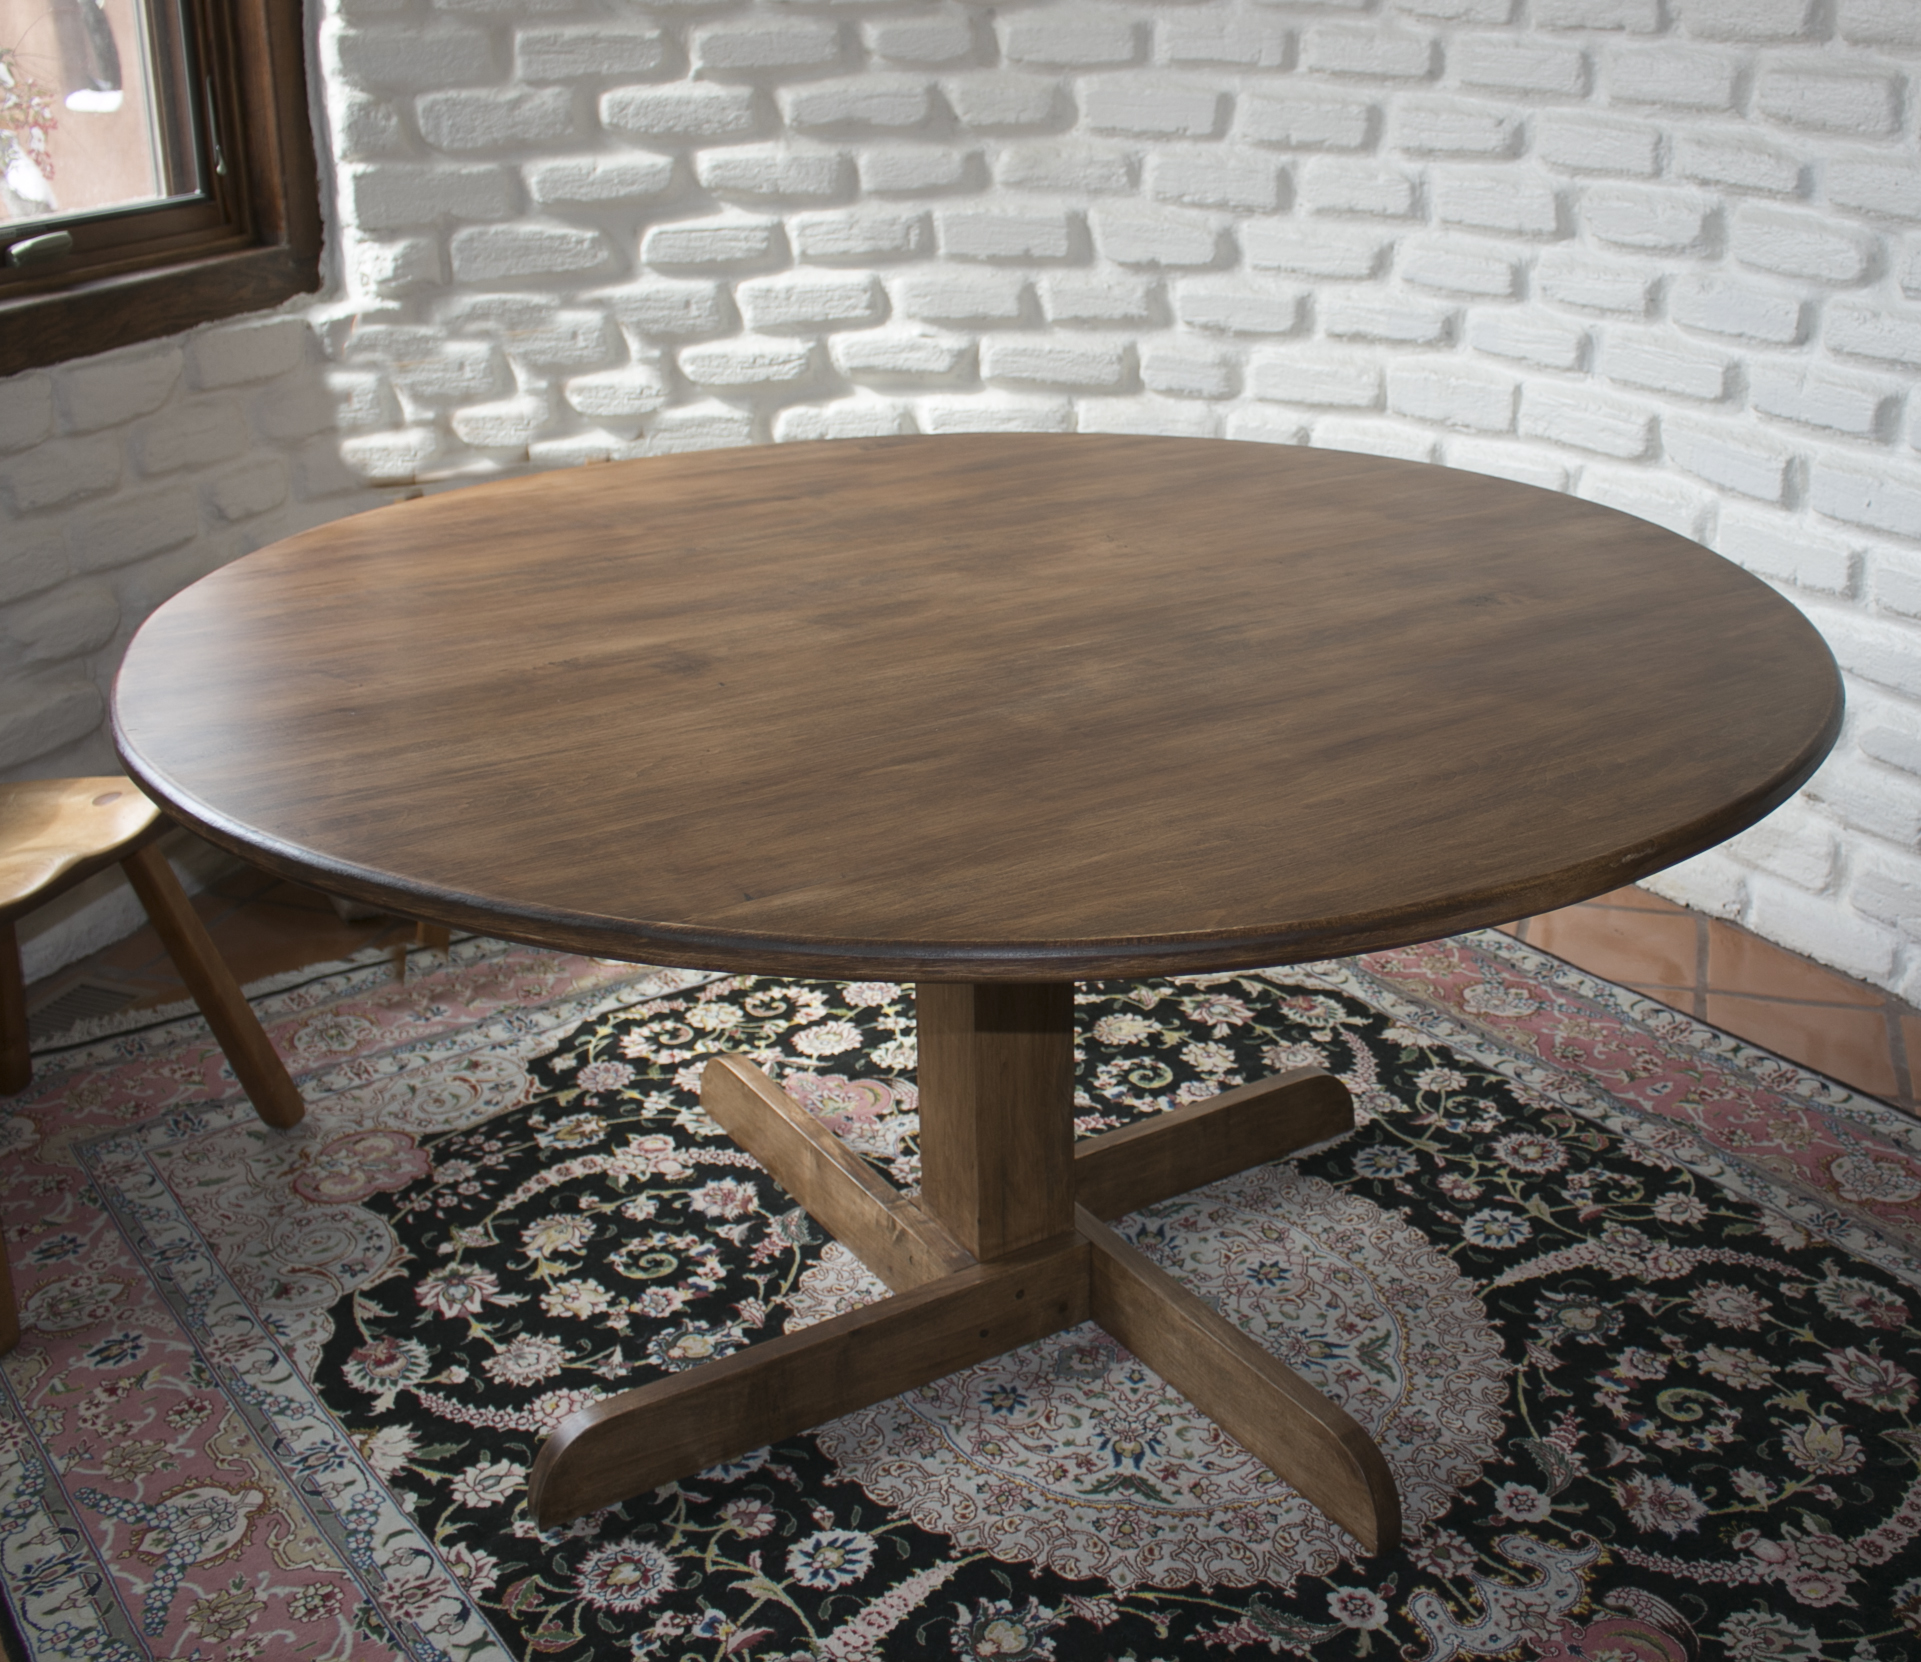 """Dining Room Round Table"